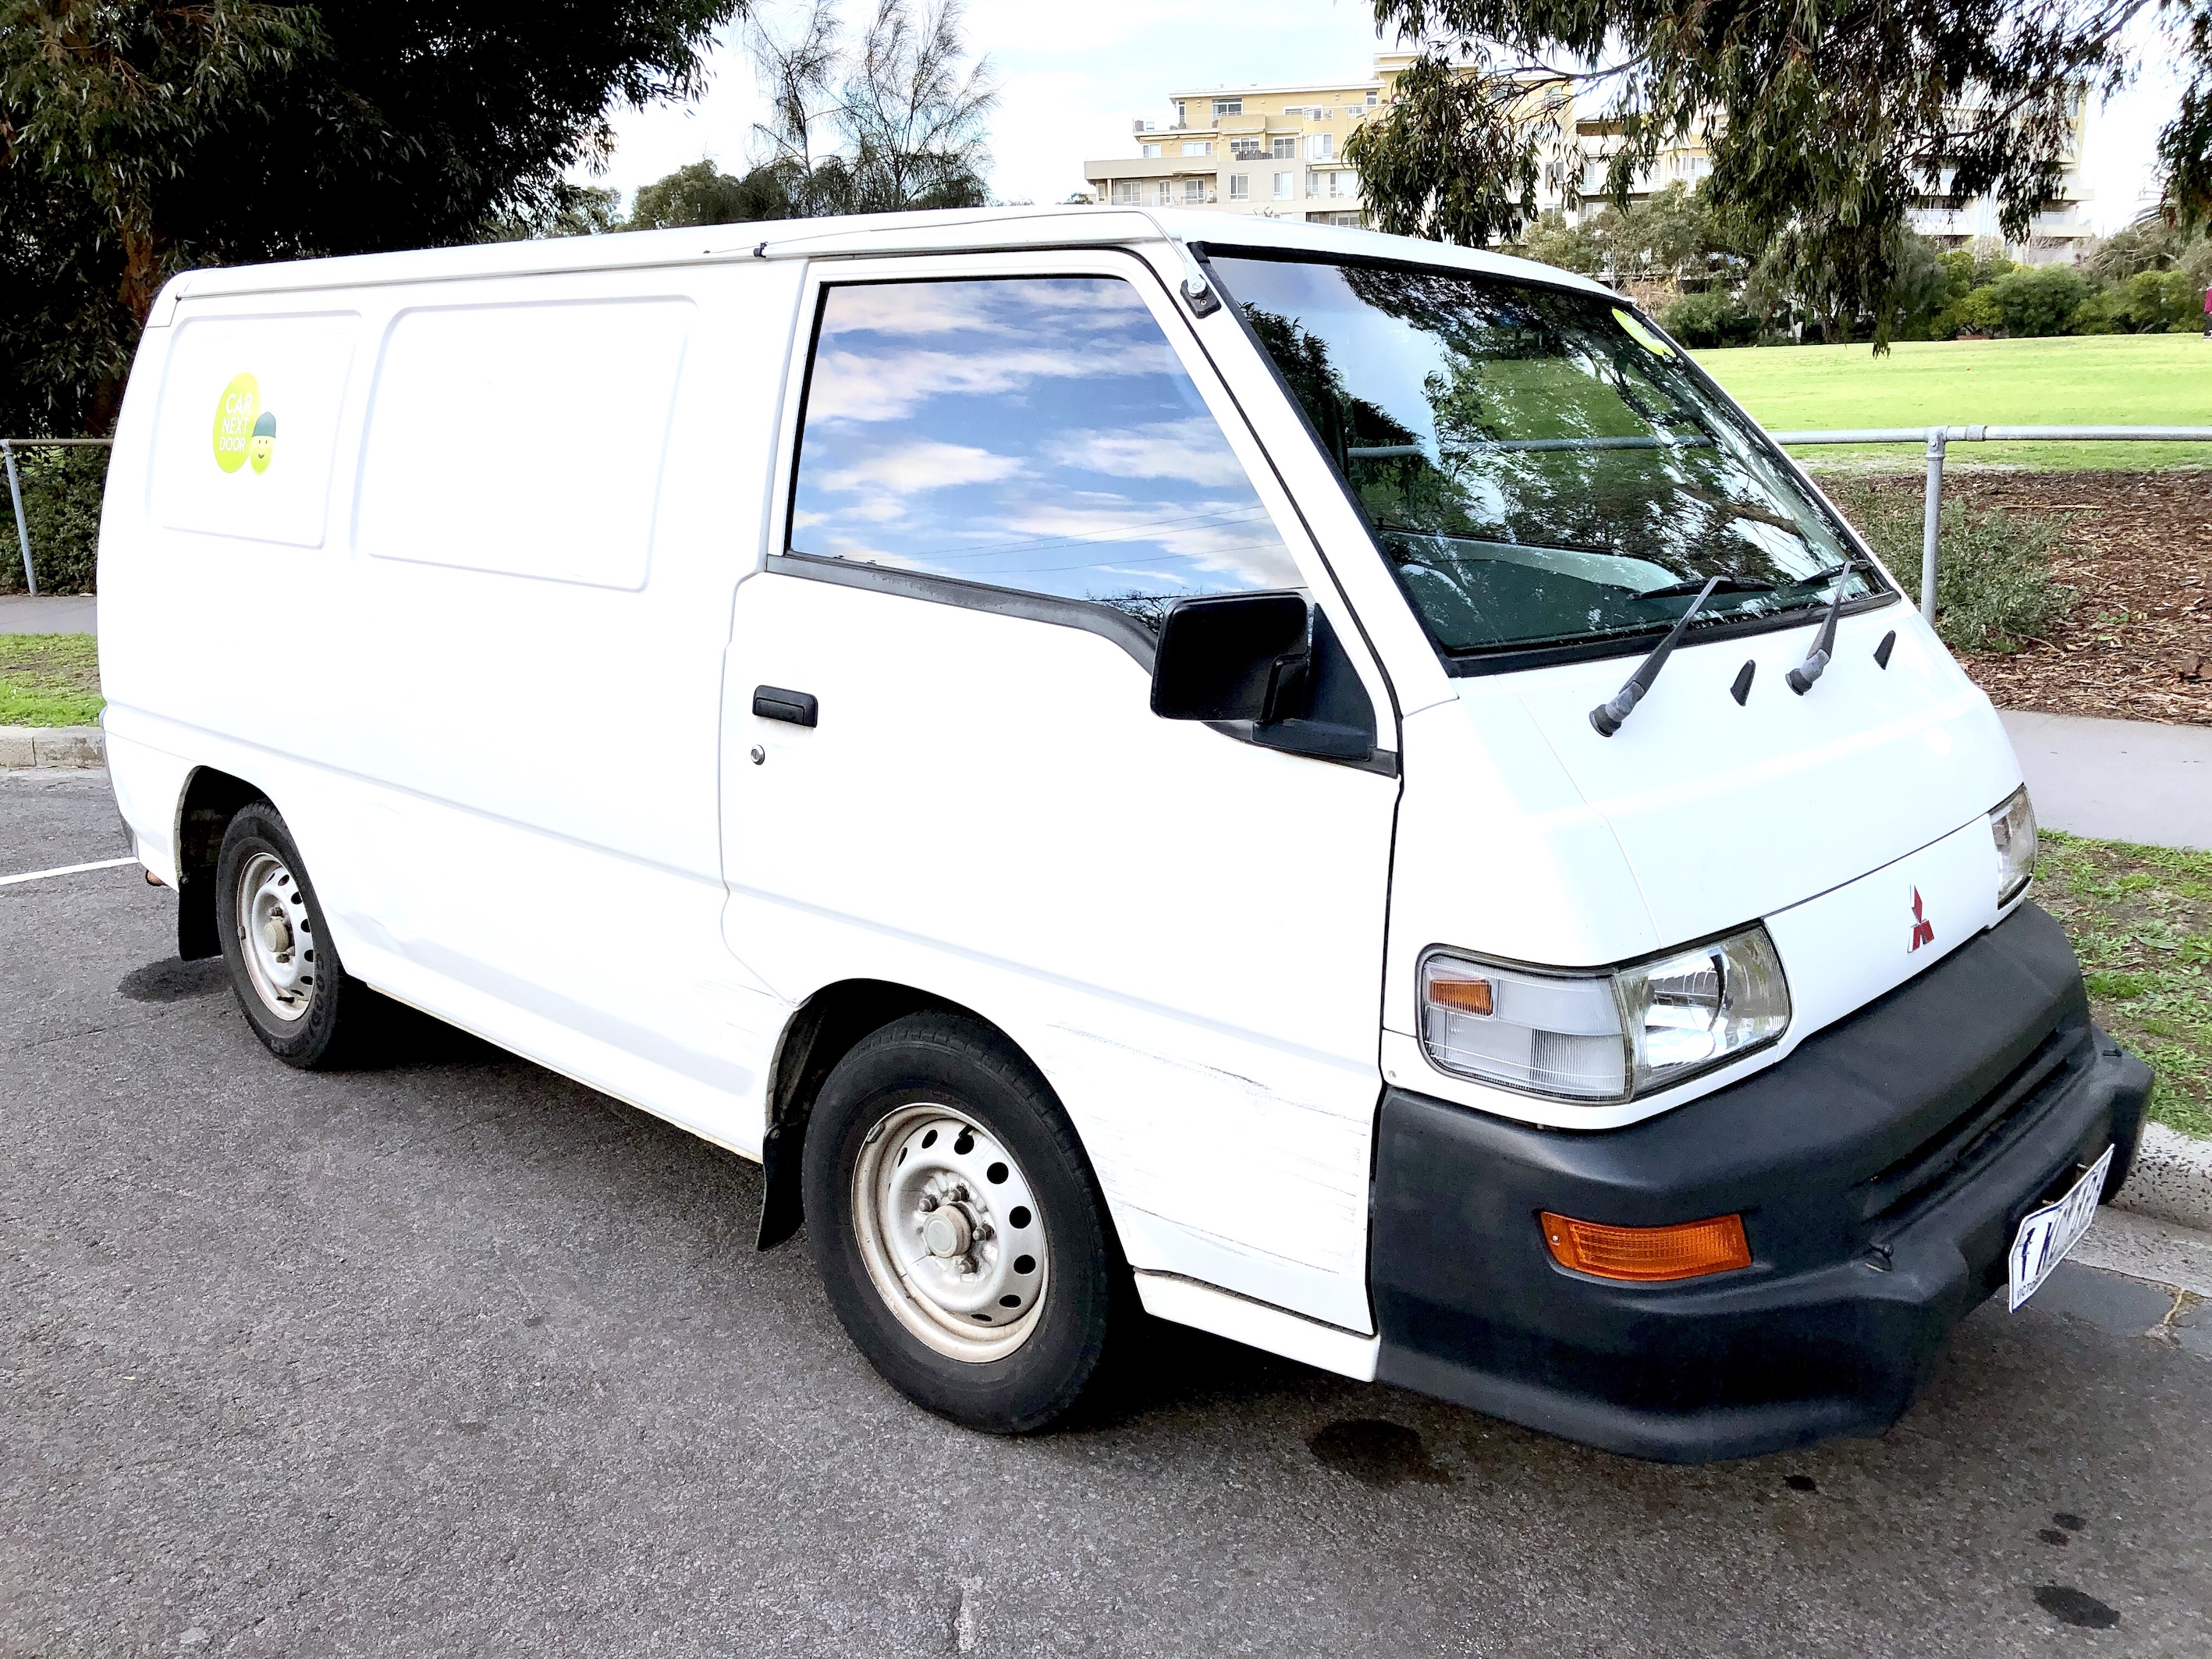 Picture of Rickie's 2003 Mitsubishi Express